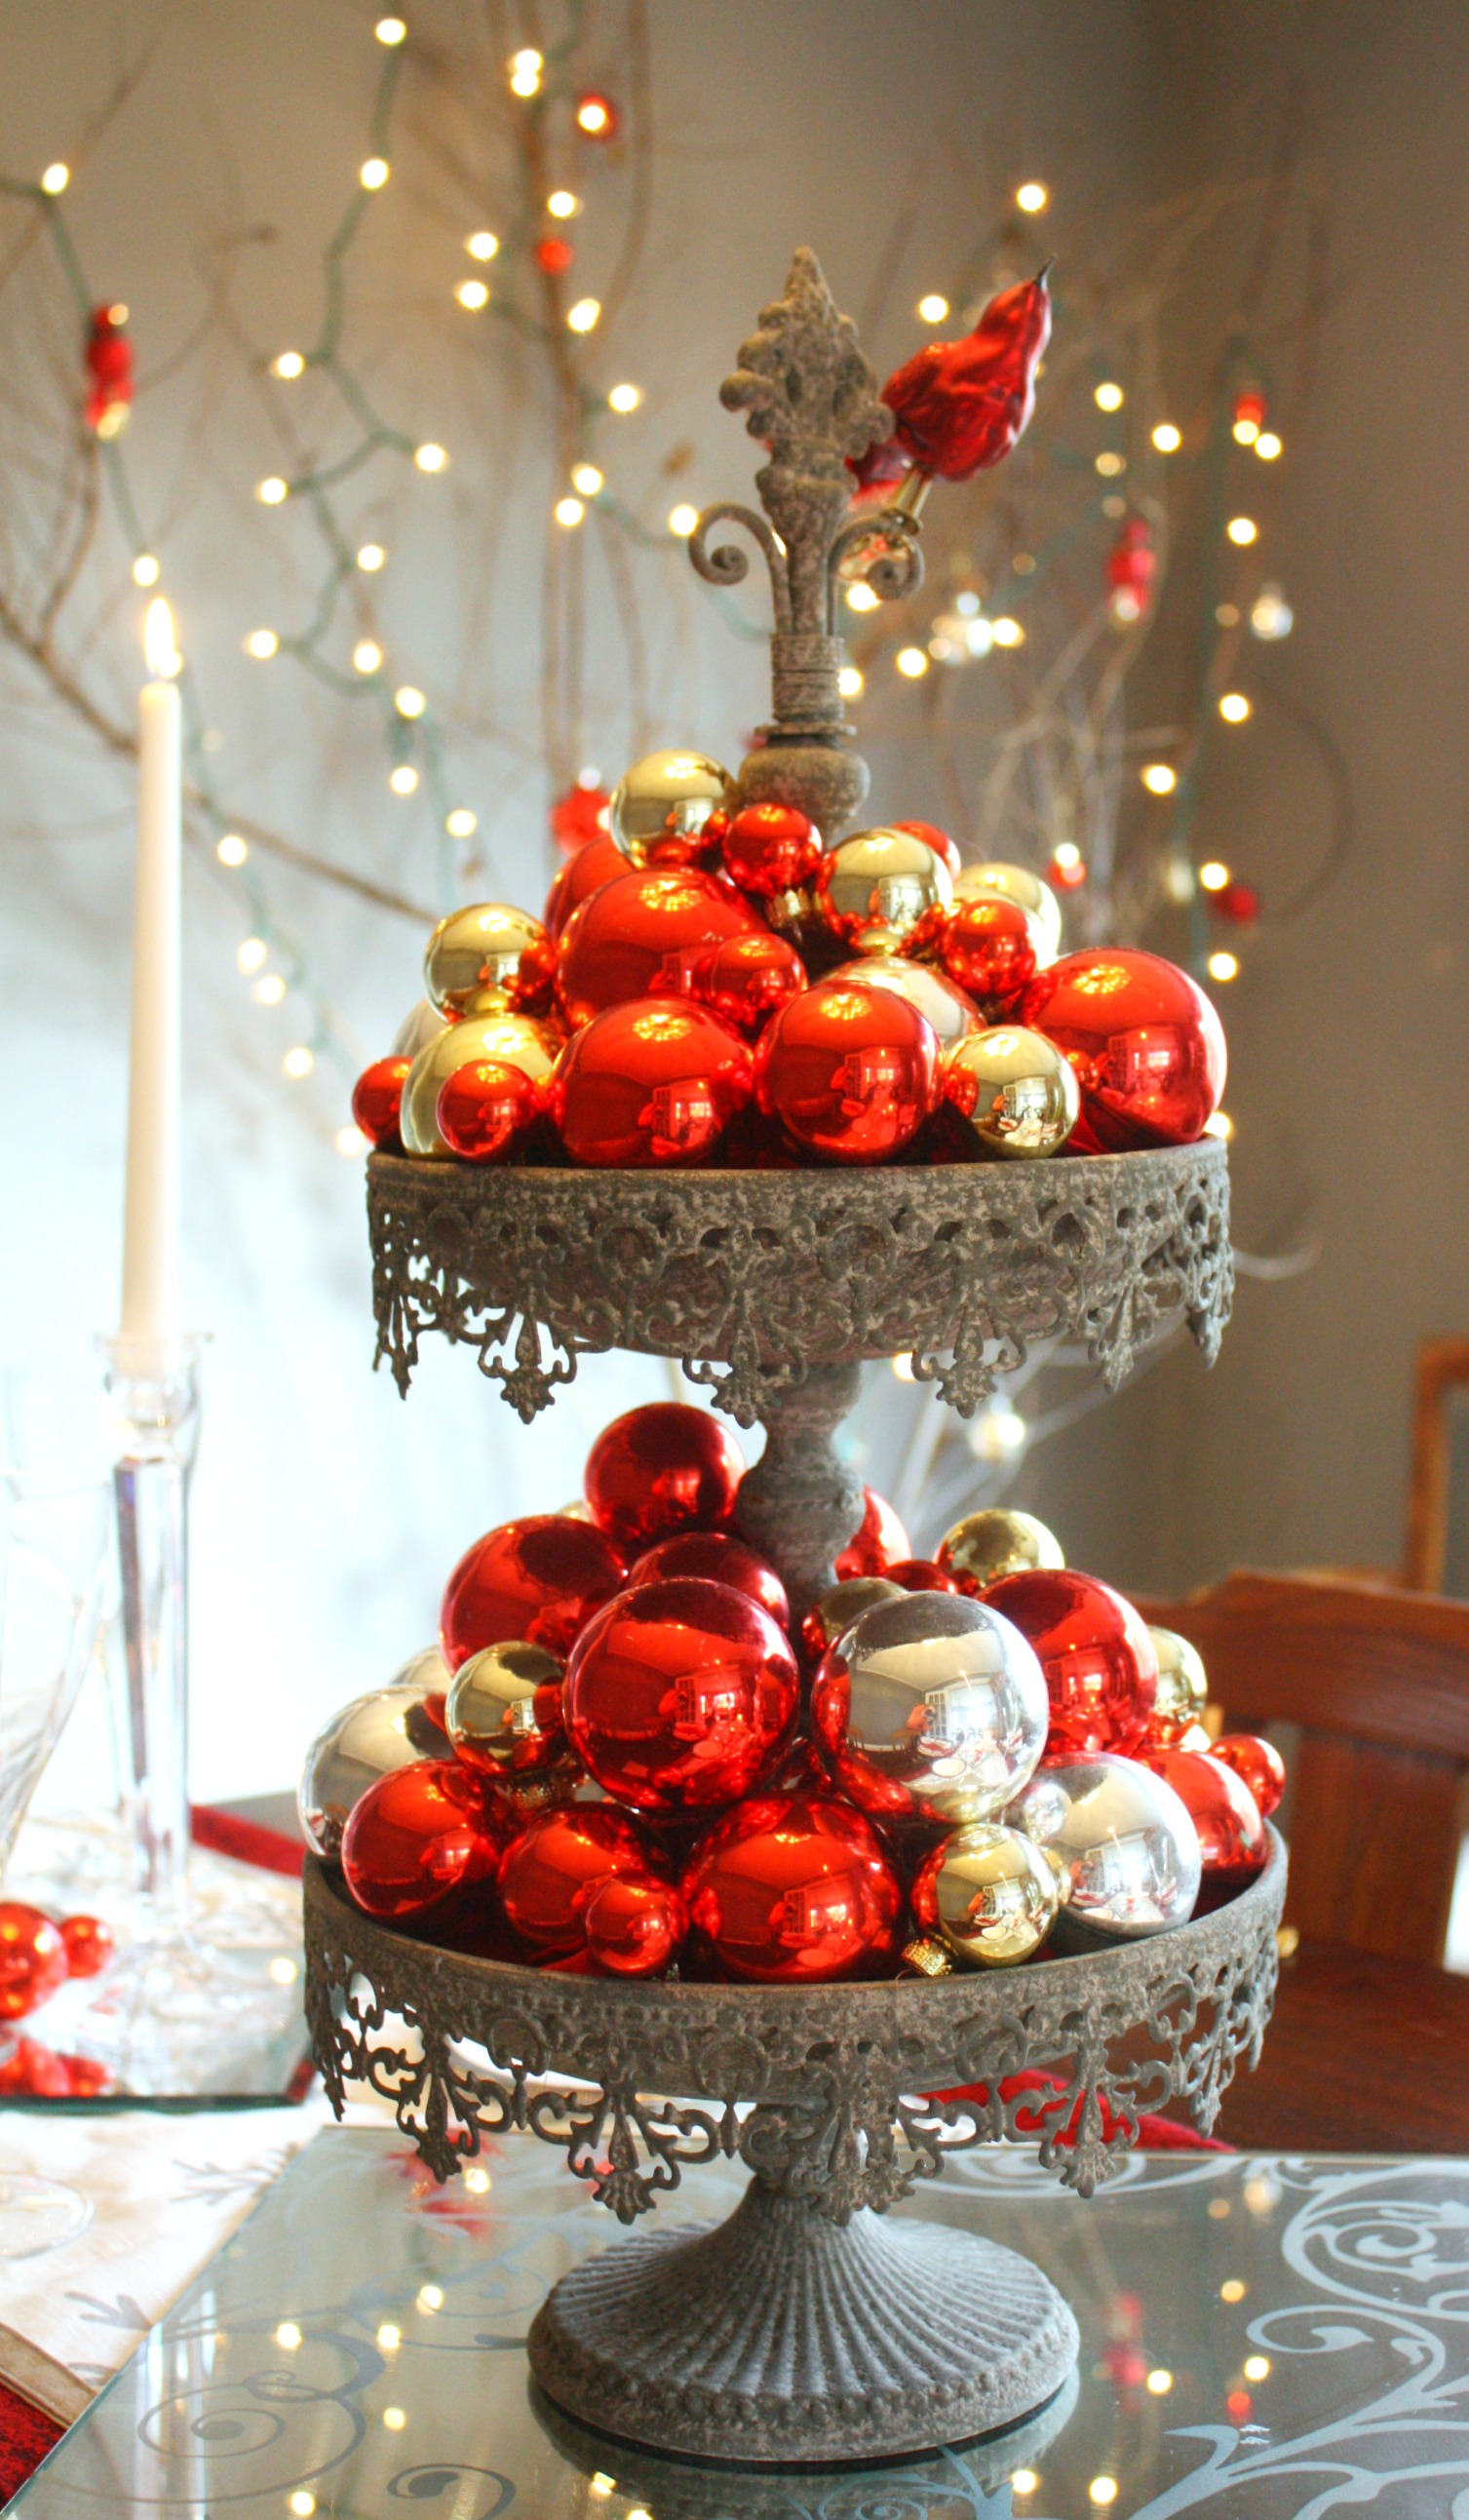 Red & Silver Christmas Table Setting • The Reaganskopp Homestead